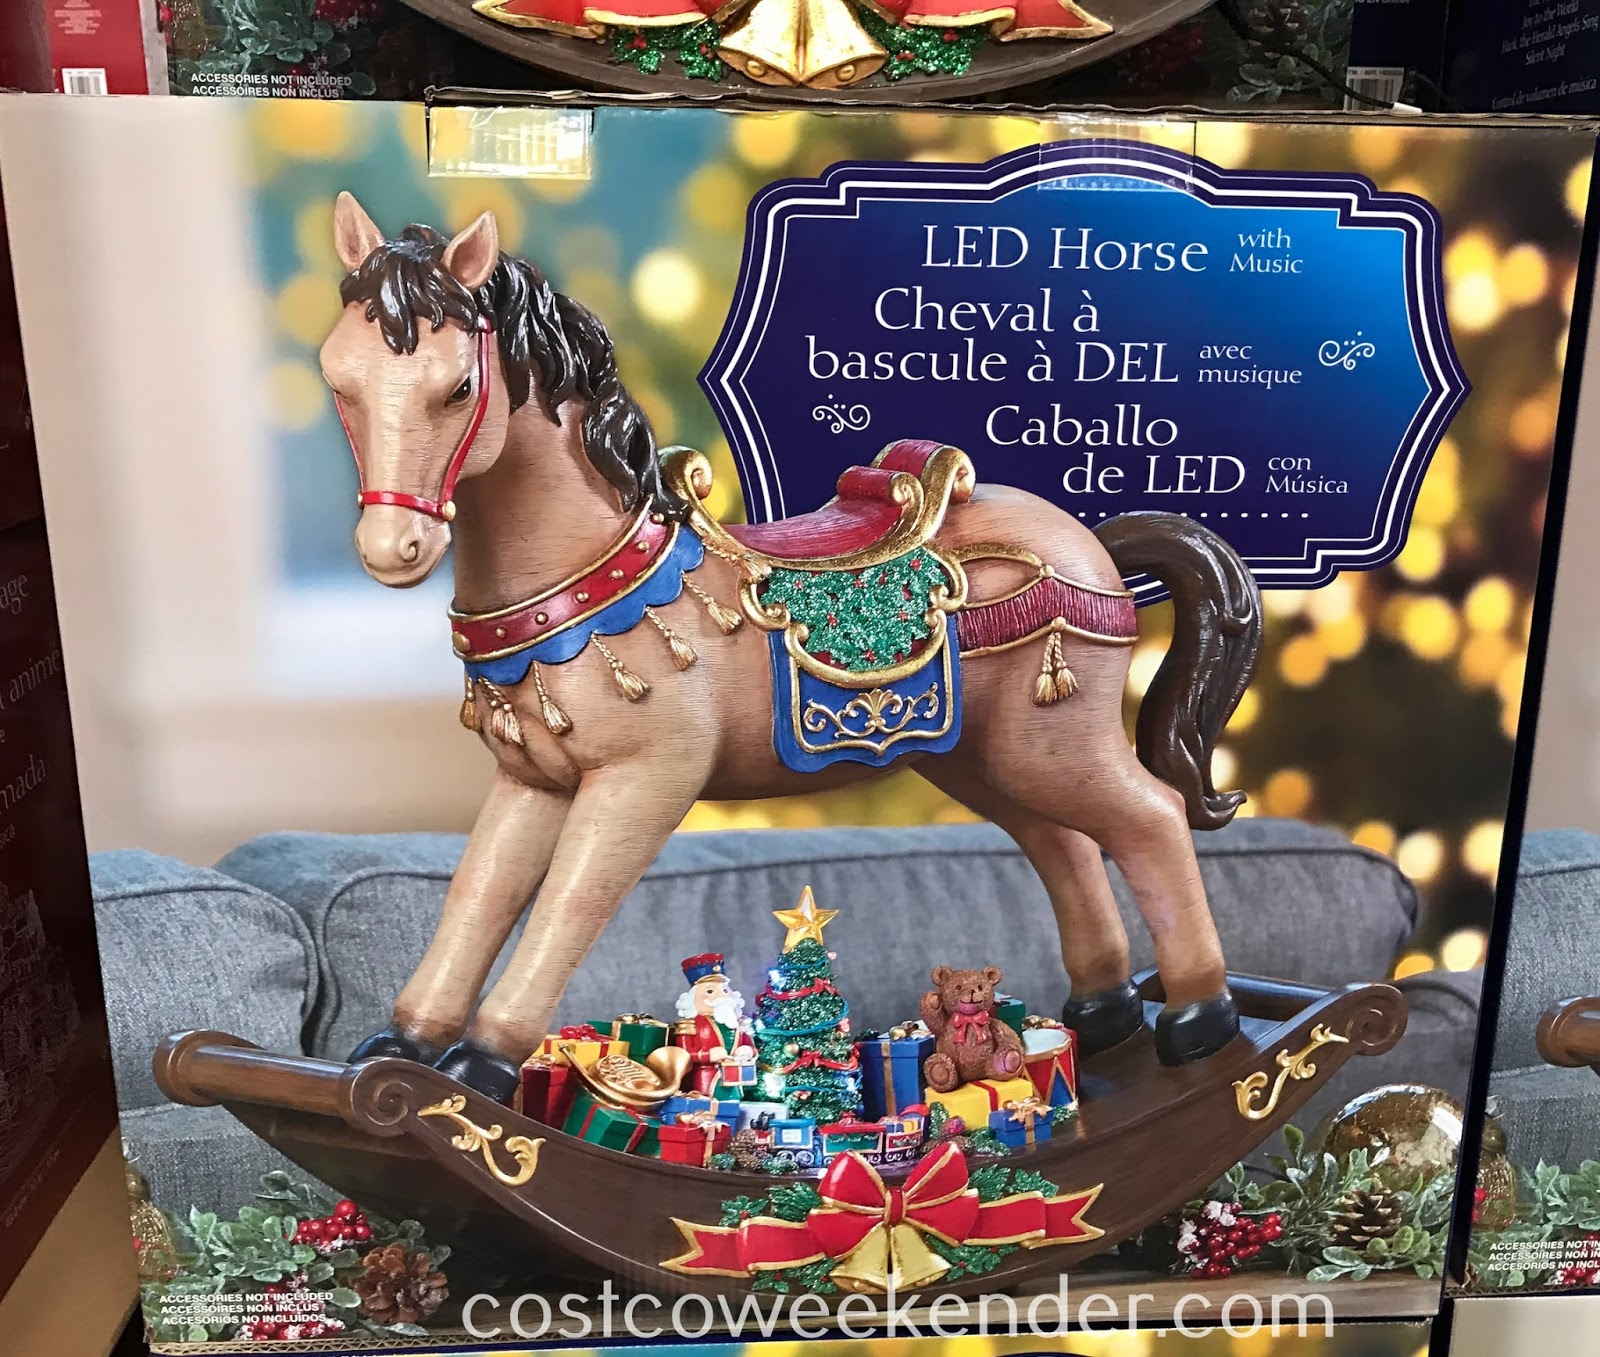 Decorate your home this Christmas with the LED Table Top Horse with Music